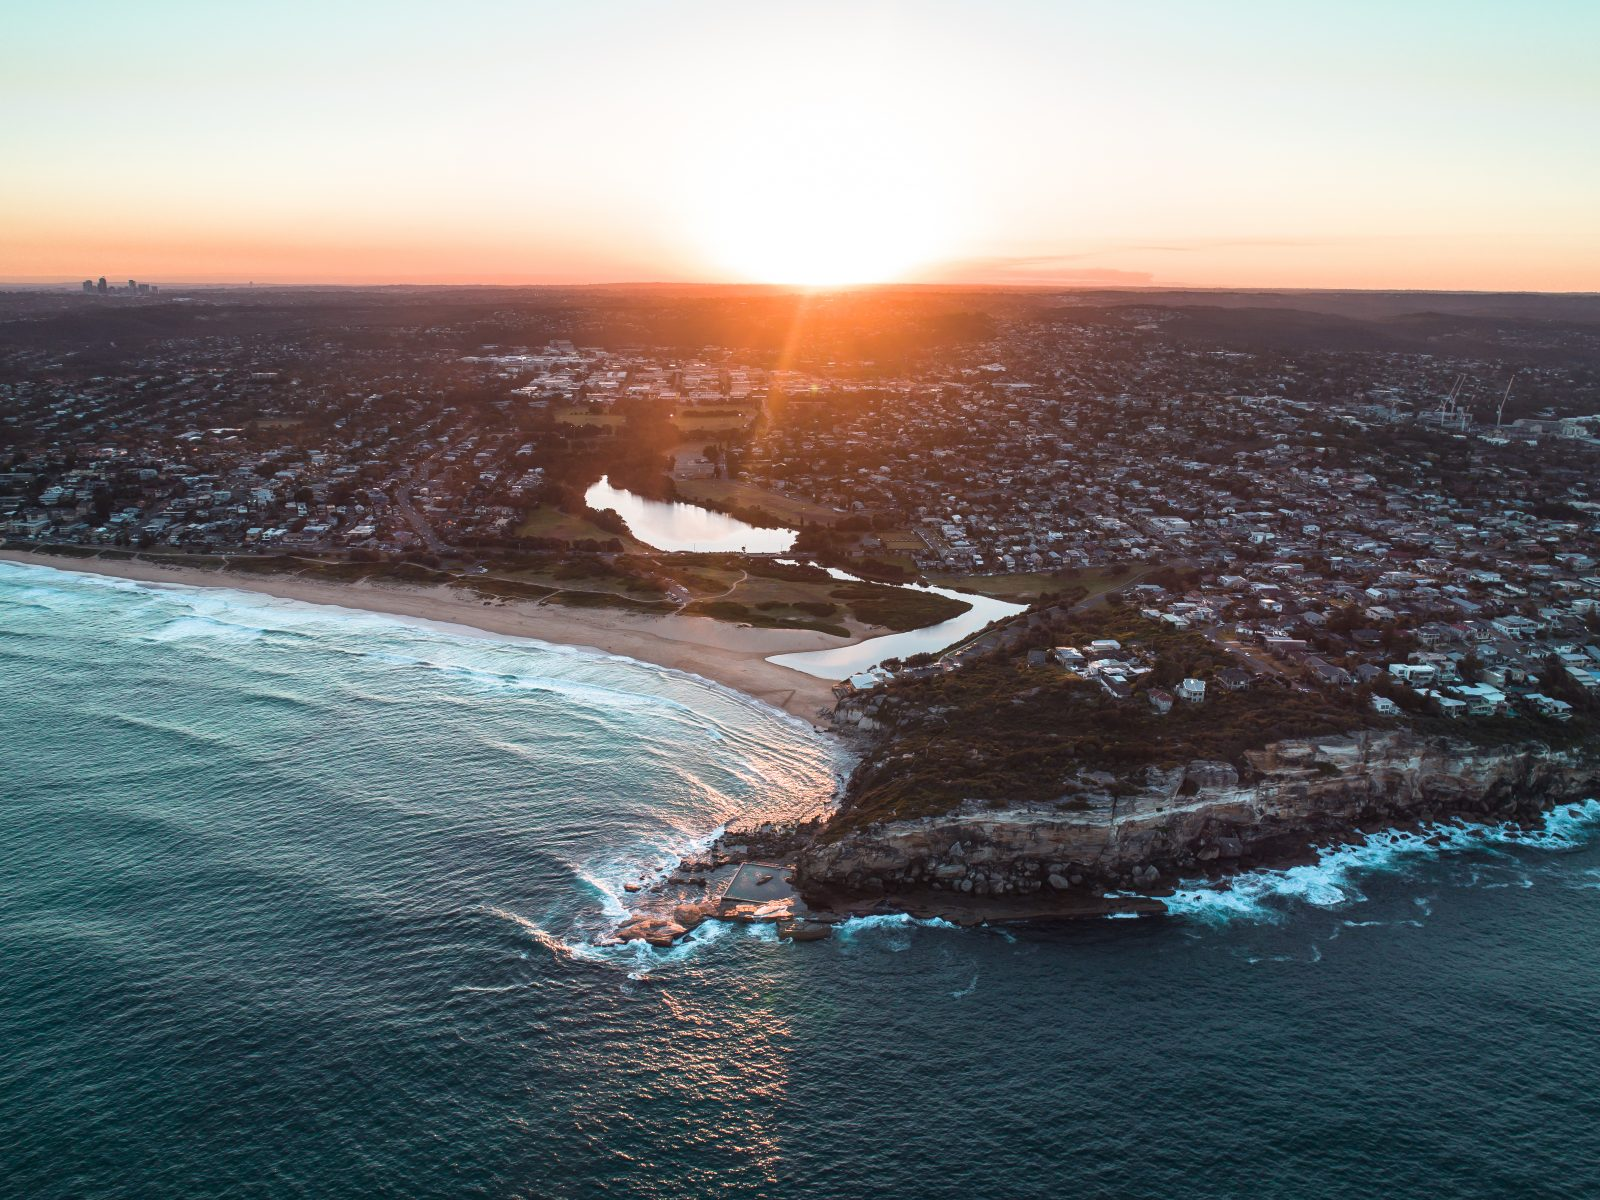 East Coast of Australia sundown